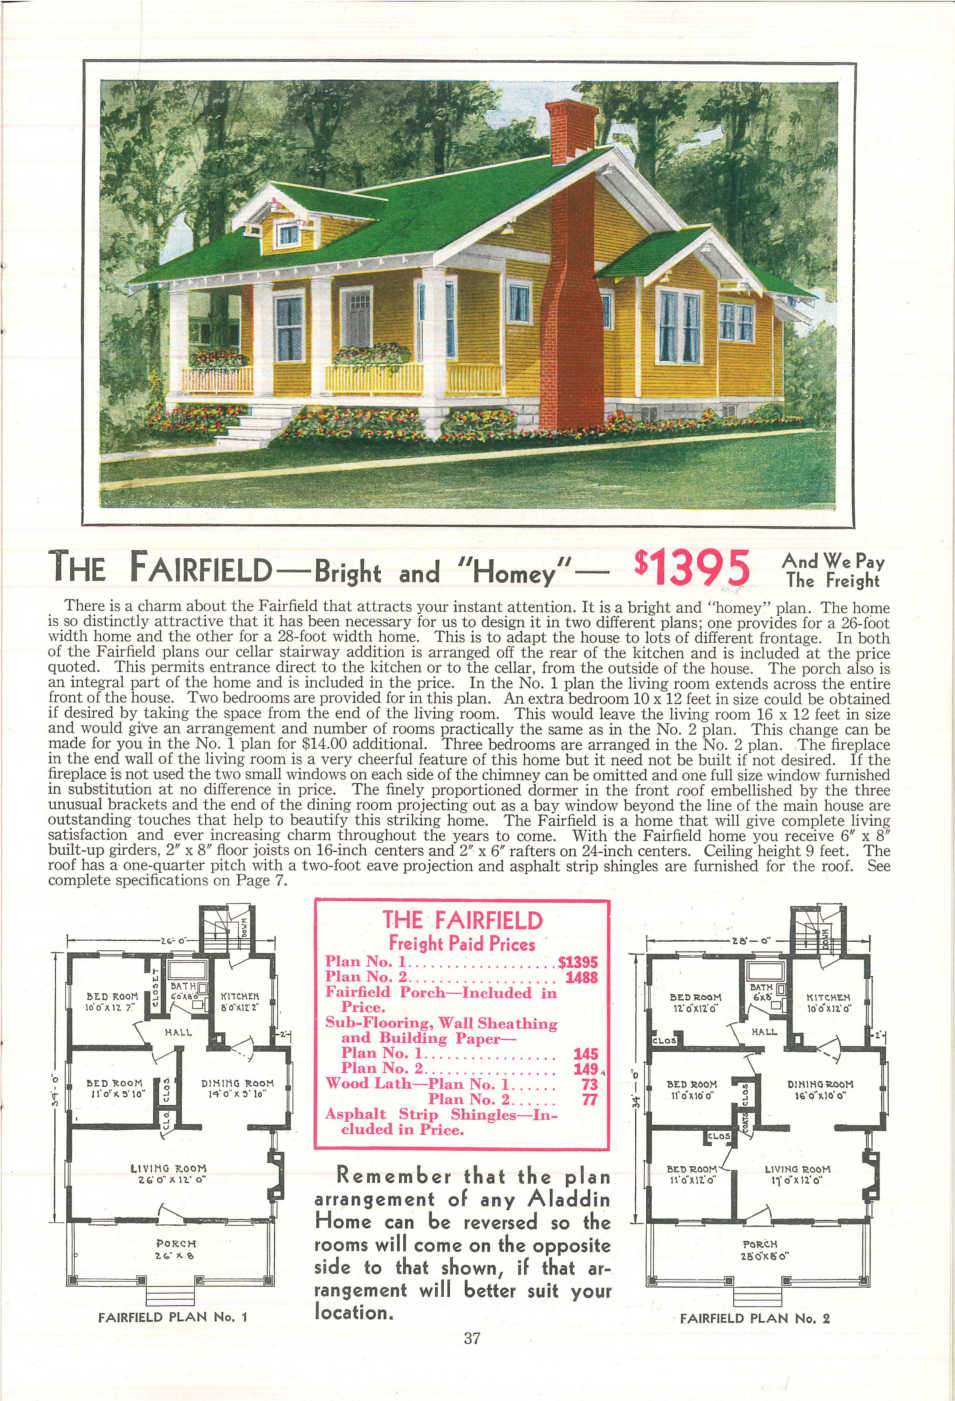 A home featured in the 1931 Aladdin Company Catalog. Image courtesy of the Clarke Historical Library at Central Michigan University.